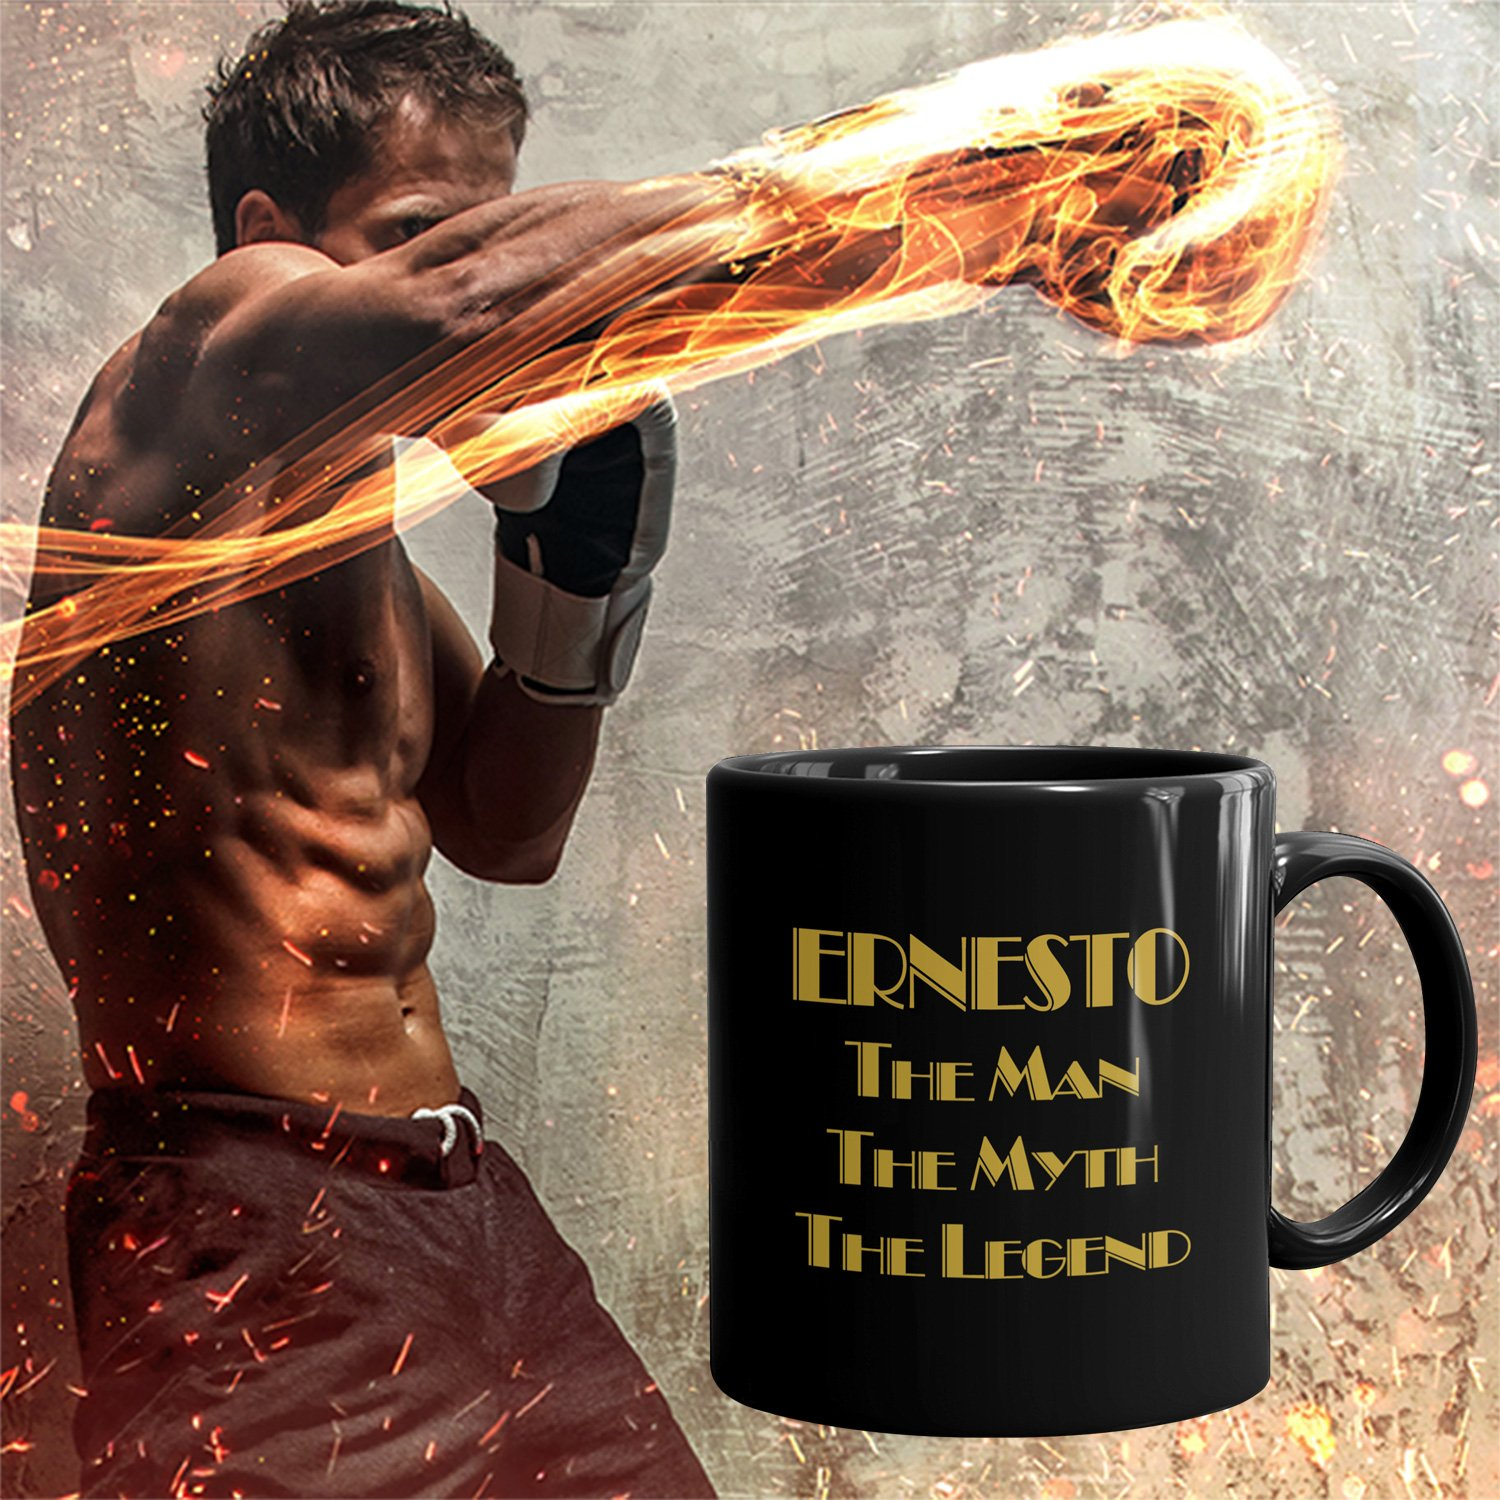 Ernesto Coffee Mug Tazas Negras Personalizadas con Nombres - The Man the Myth the Legend - Best Gifts Regalos for Men - 11 oz Black mug - Gold Black 2: ...